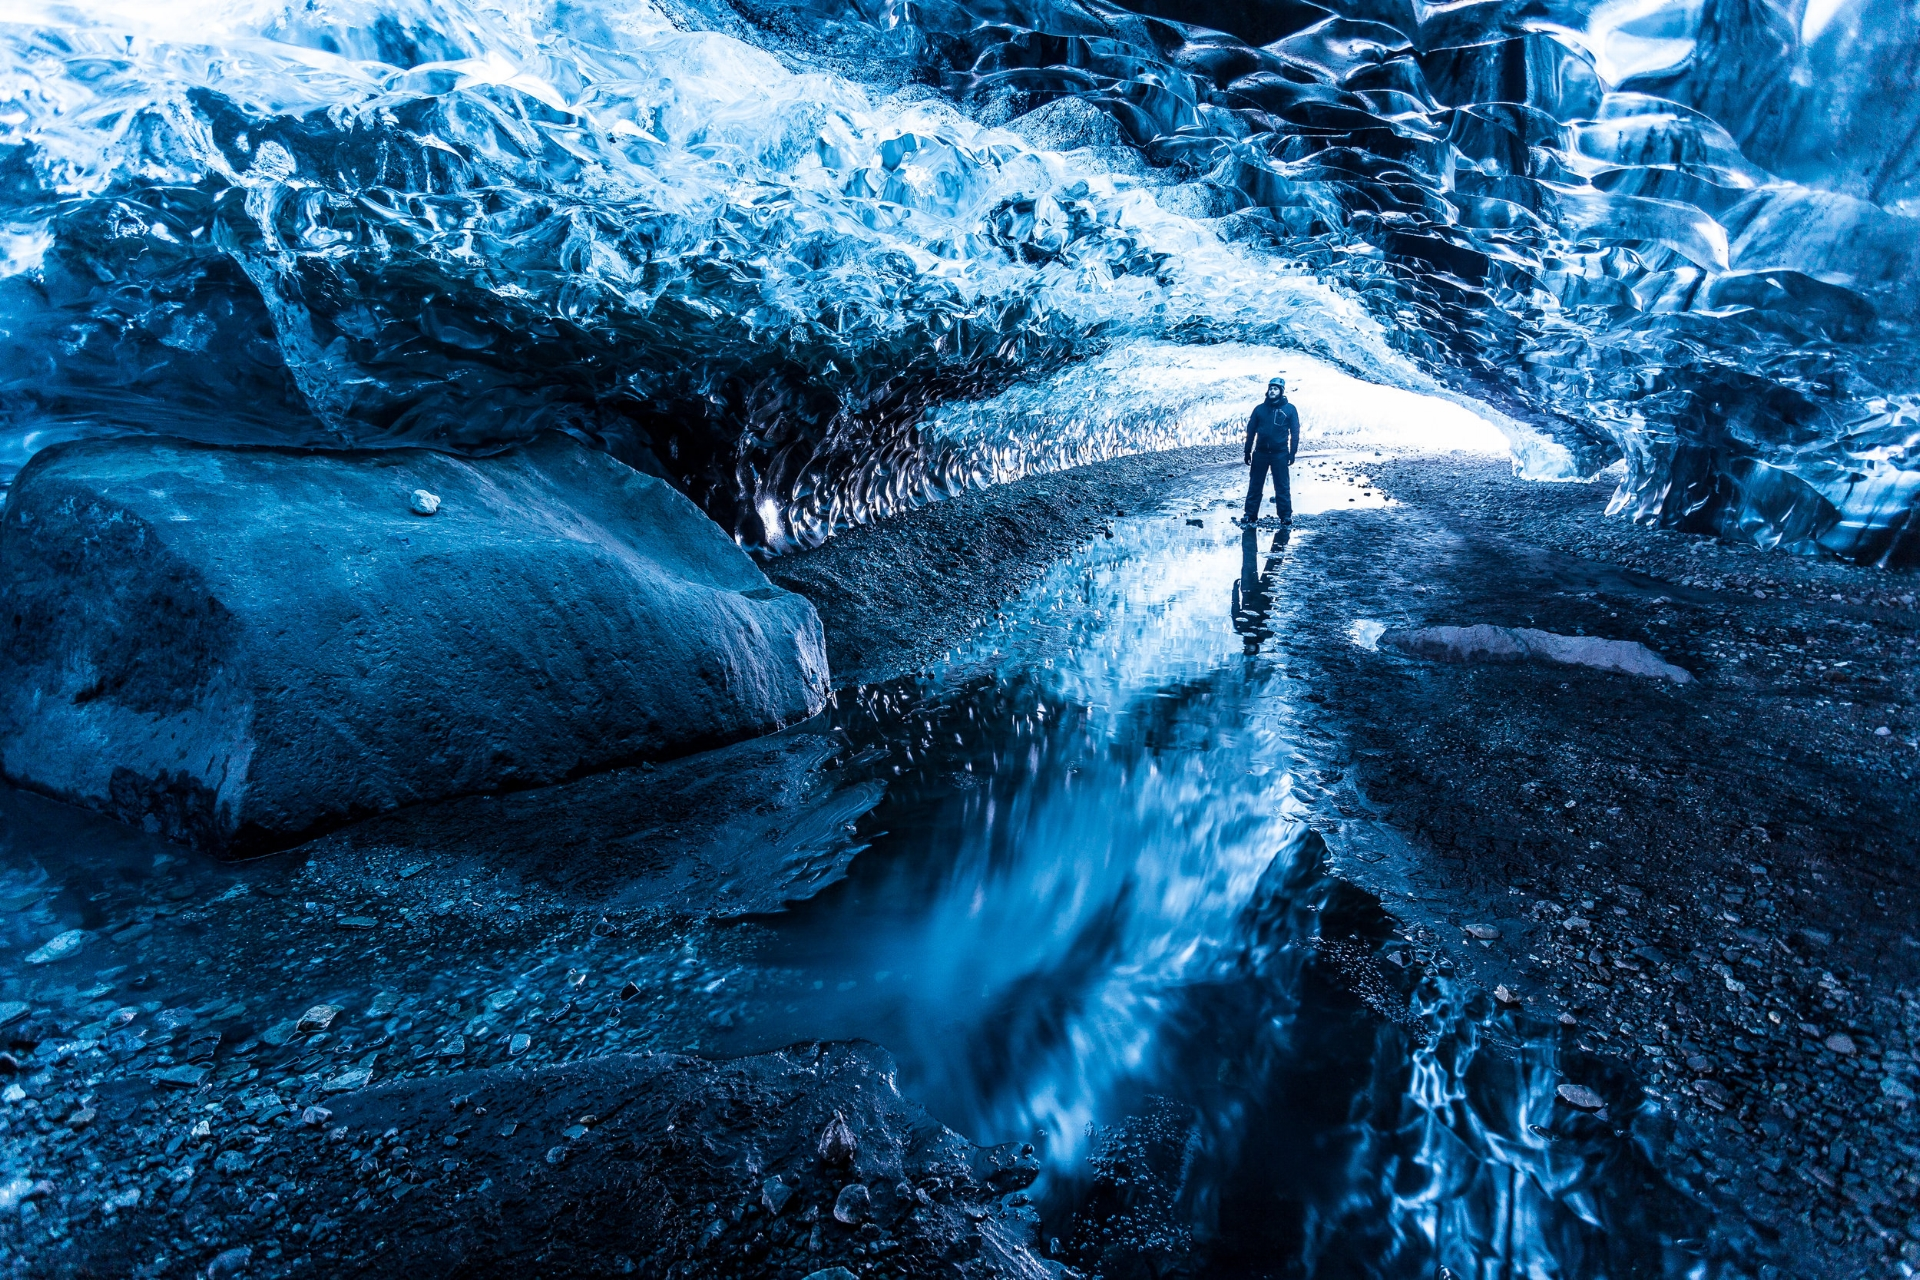 A beautiful blue ice cave underneath Breiðamerkurjökull, a glacier tongue of Vatnajökull.